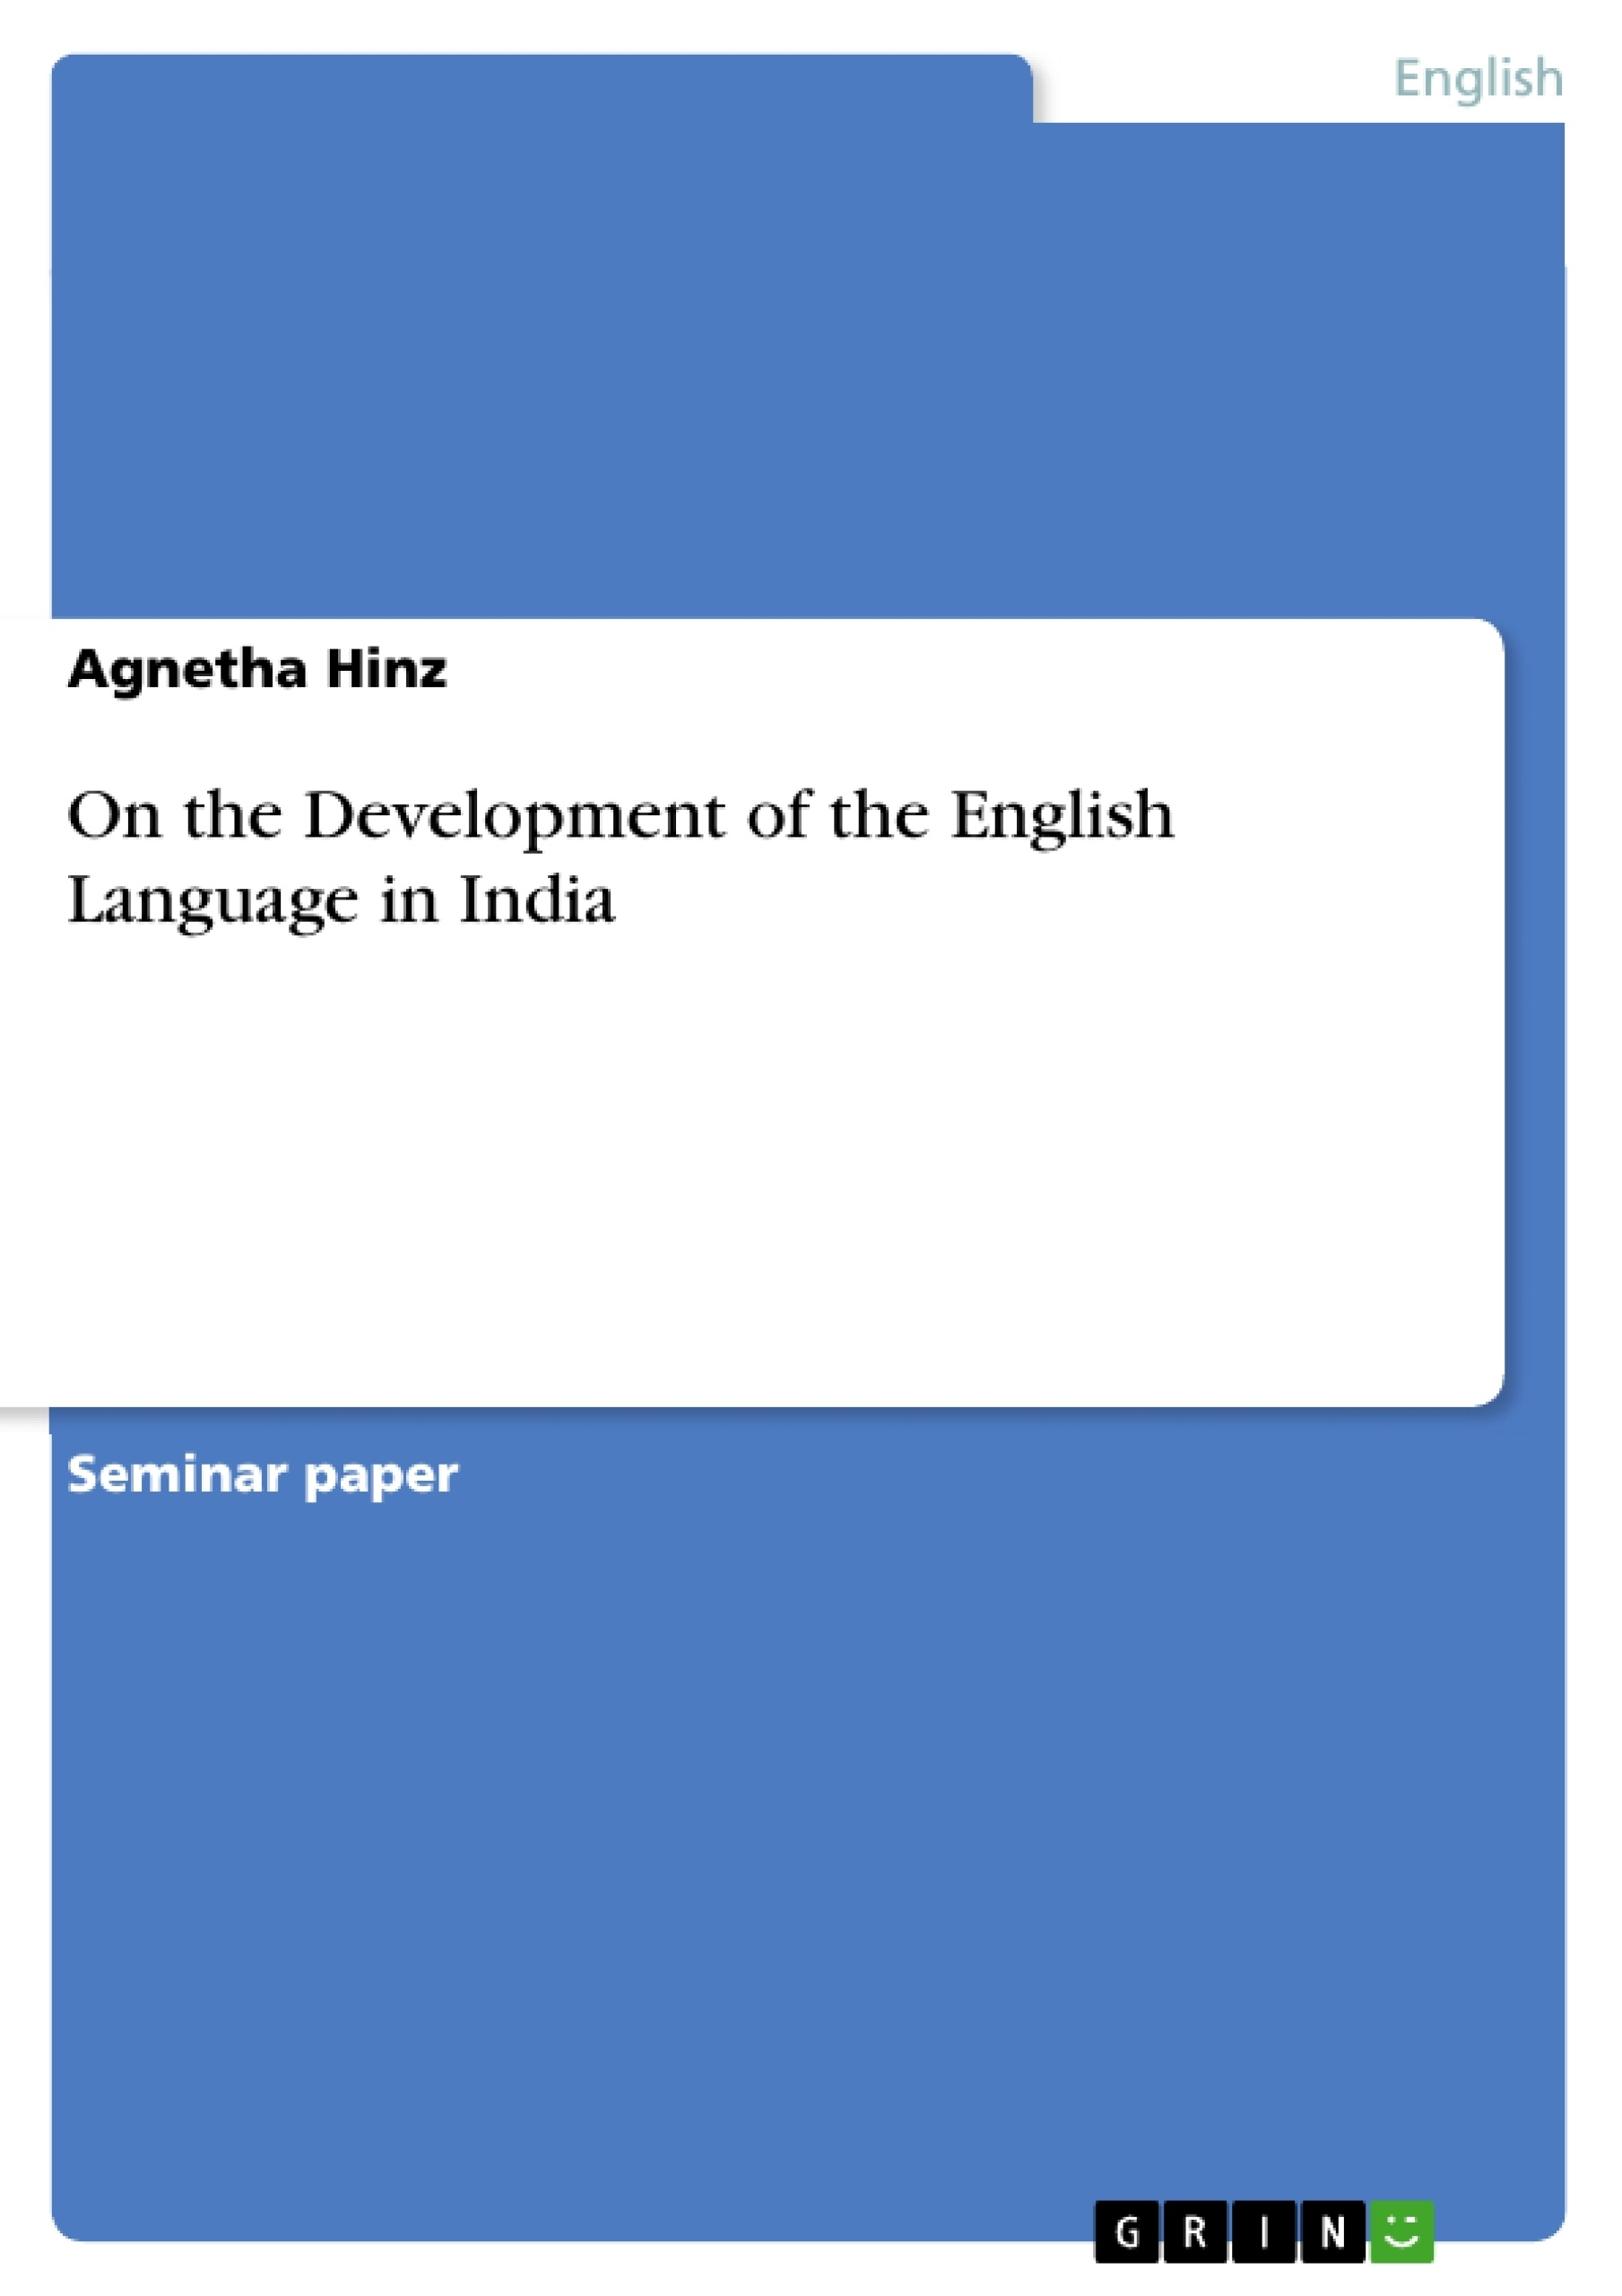 Title: On the Development of the English Language in India